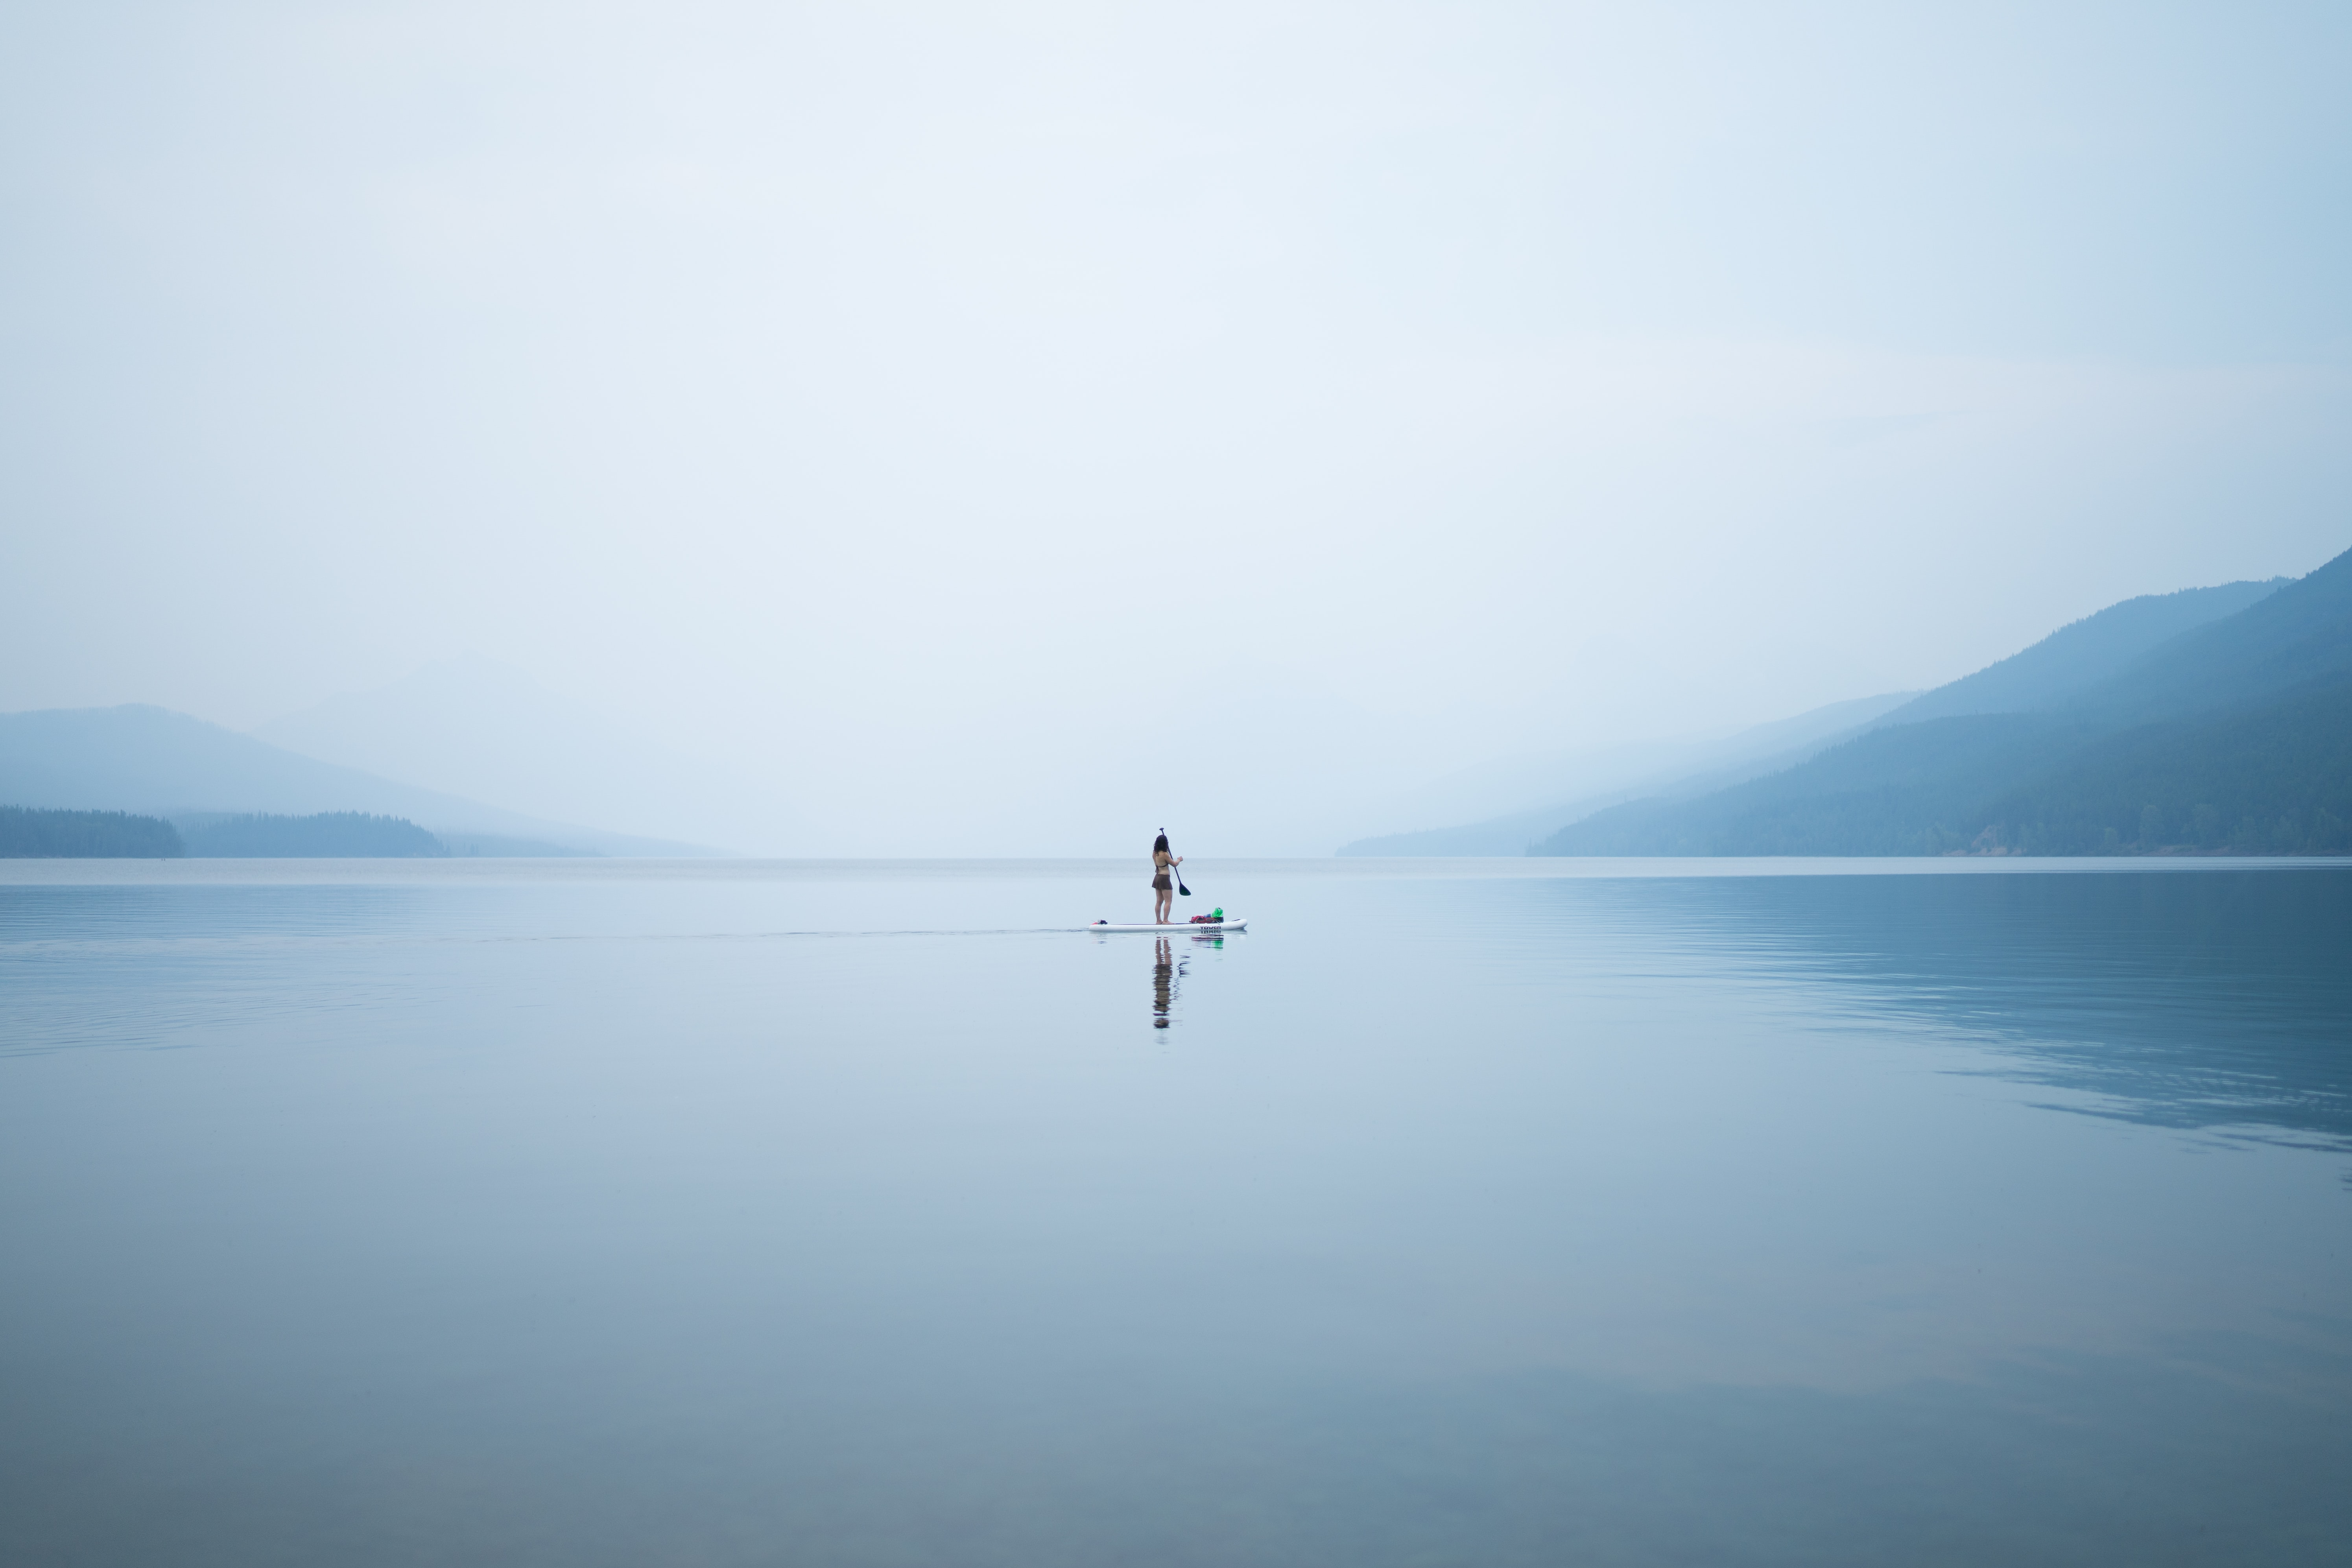 photo of person on calm body of water